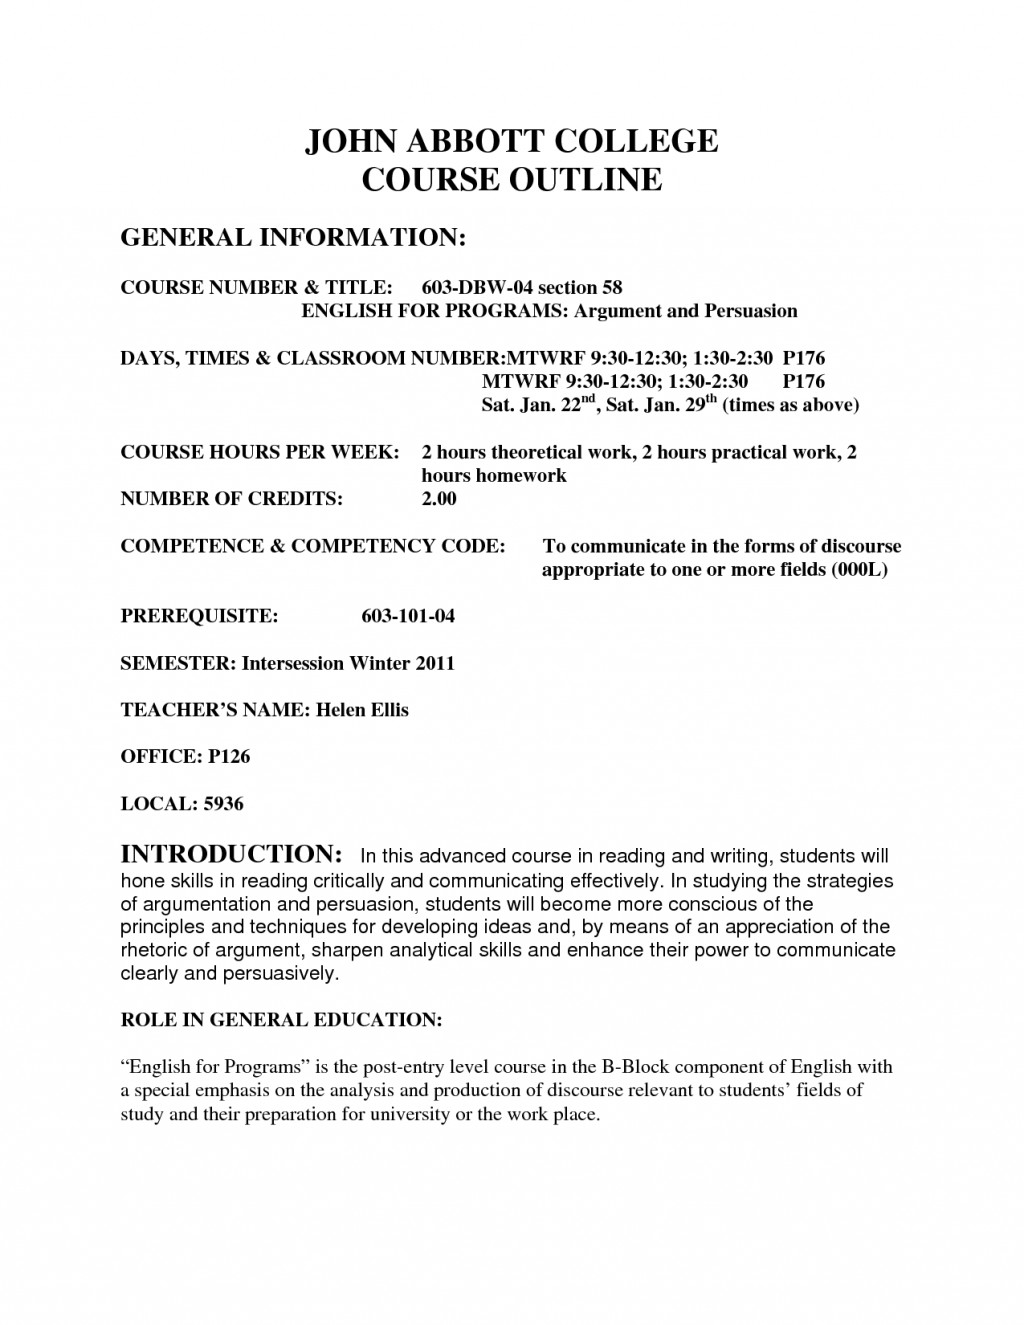 002 How To Do College Level Essay Self Introduction Electoral Paragraph Education Entrance Life Applications Best Introductions Exceptional Persuasive Examples Argumentative Topics Large